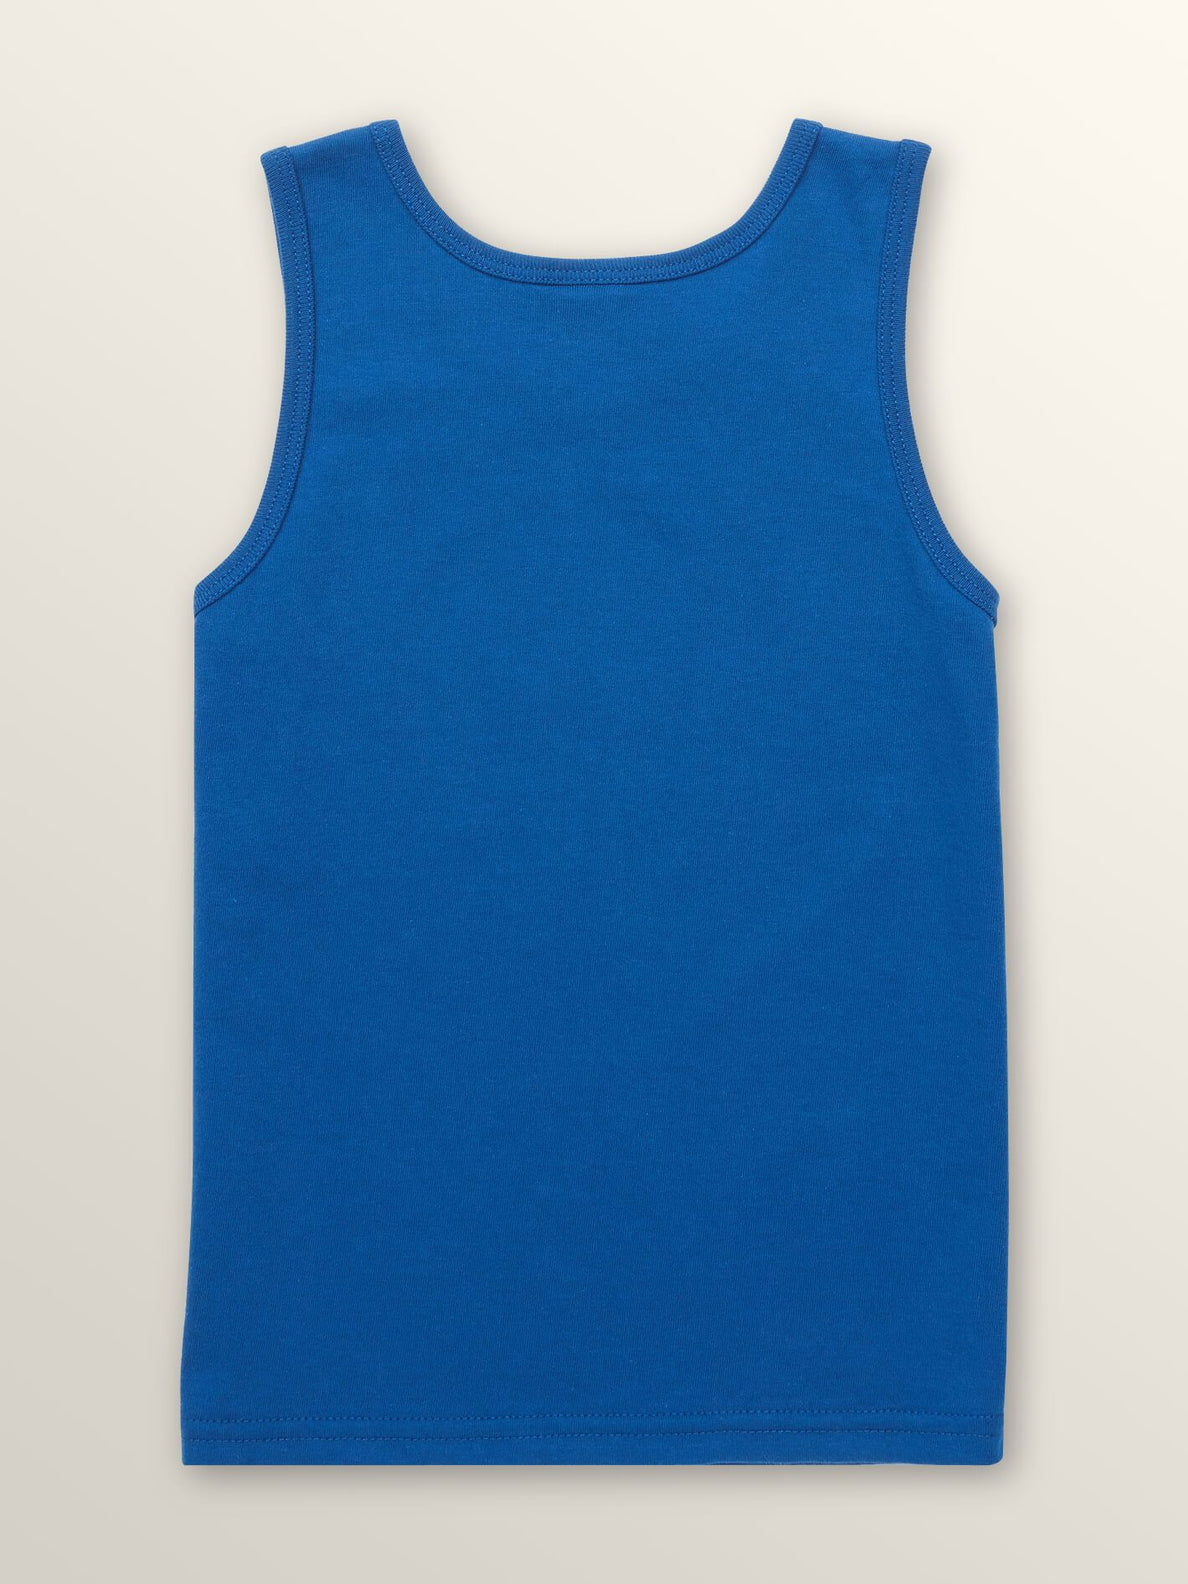 Little Boys Surf Skull Tank In Camper Blue, Back View